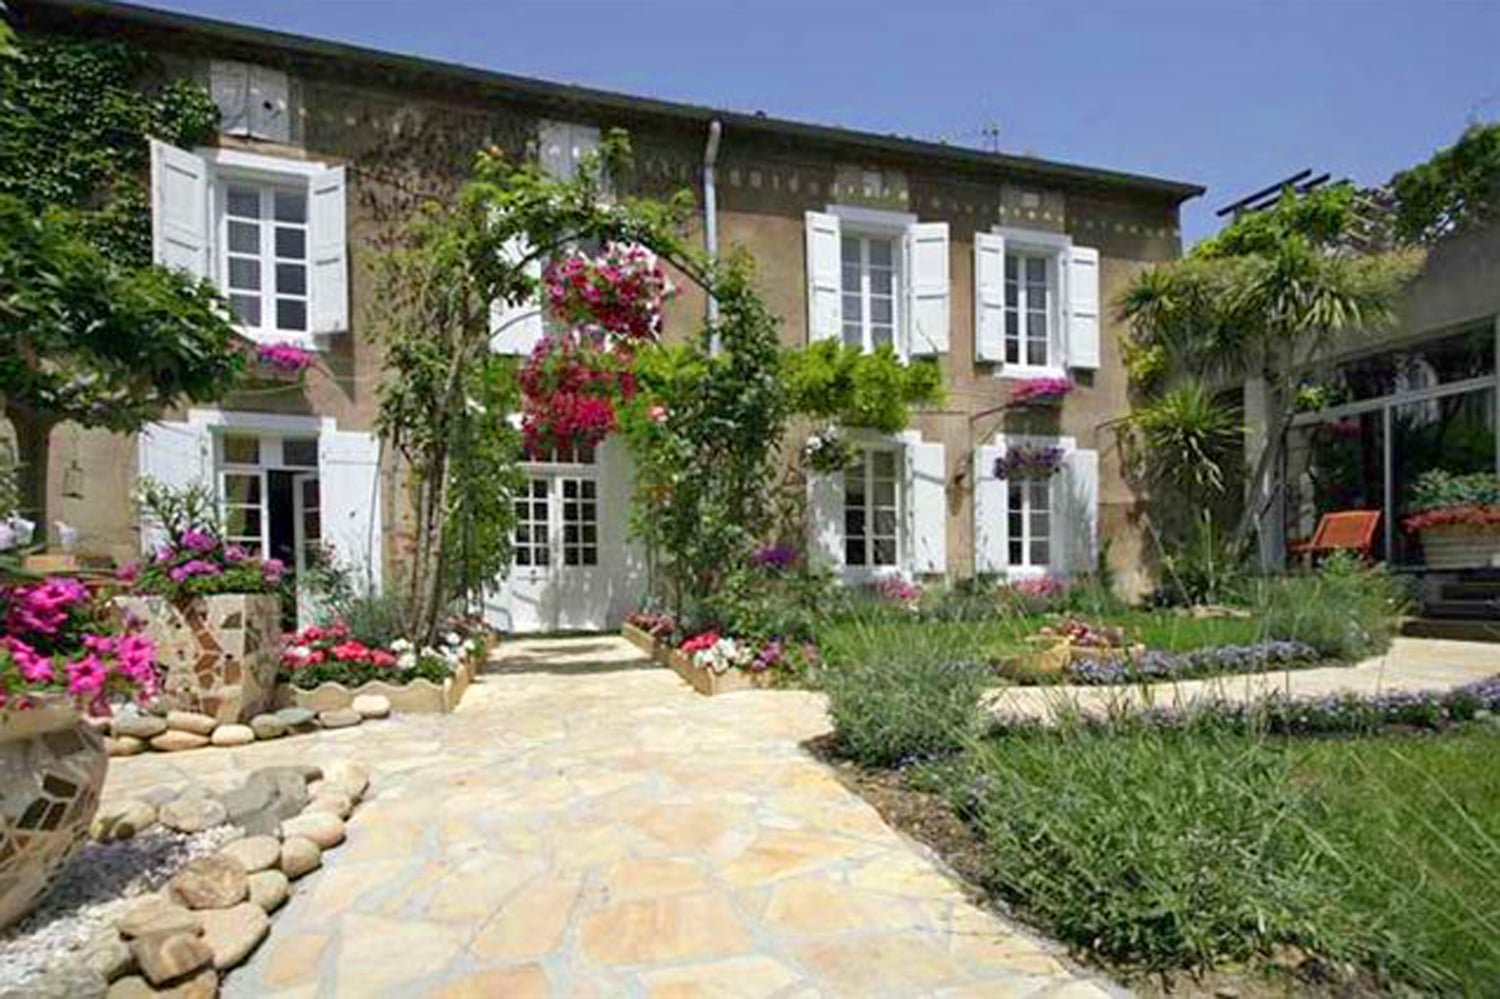 Manoir for sale in Hérault, with heated swimming pool, garden, garage and outbuildings